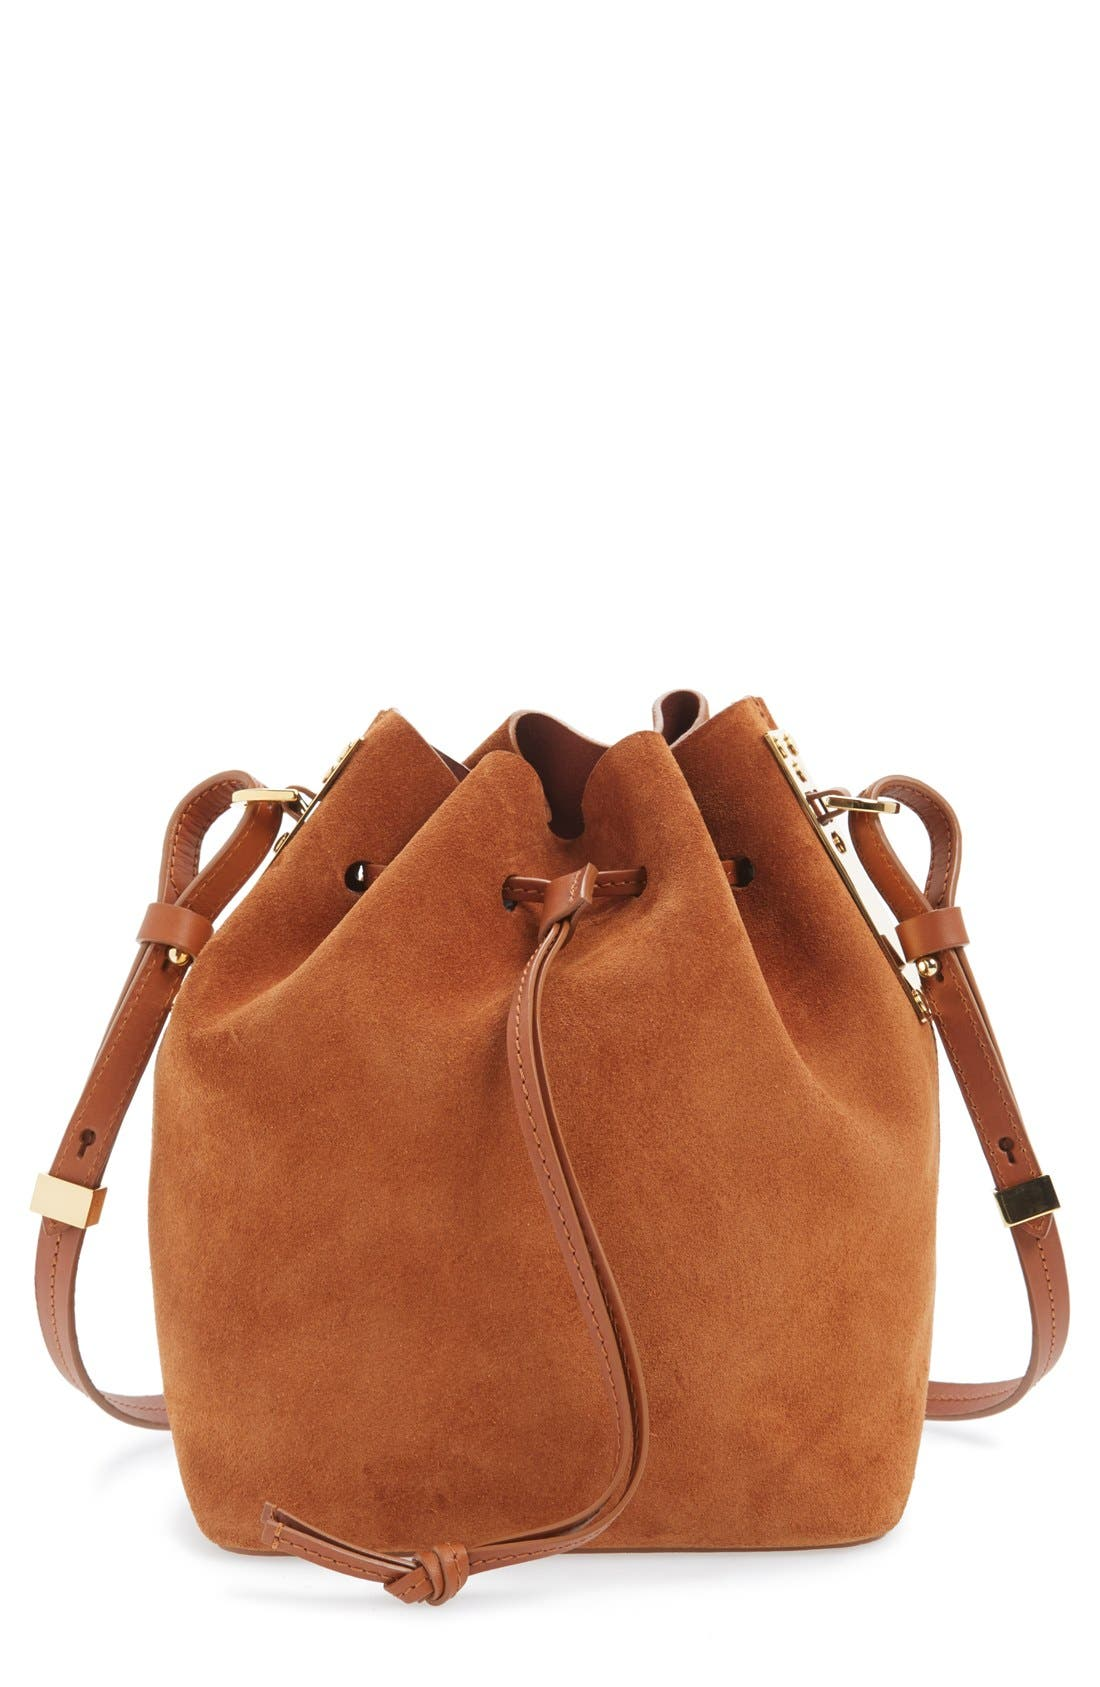 Alternate Image 1 Selected - Sophie Hulme 'Small Nelson' Drawstring Crossbody Bag